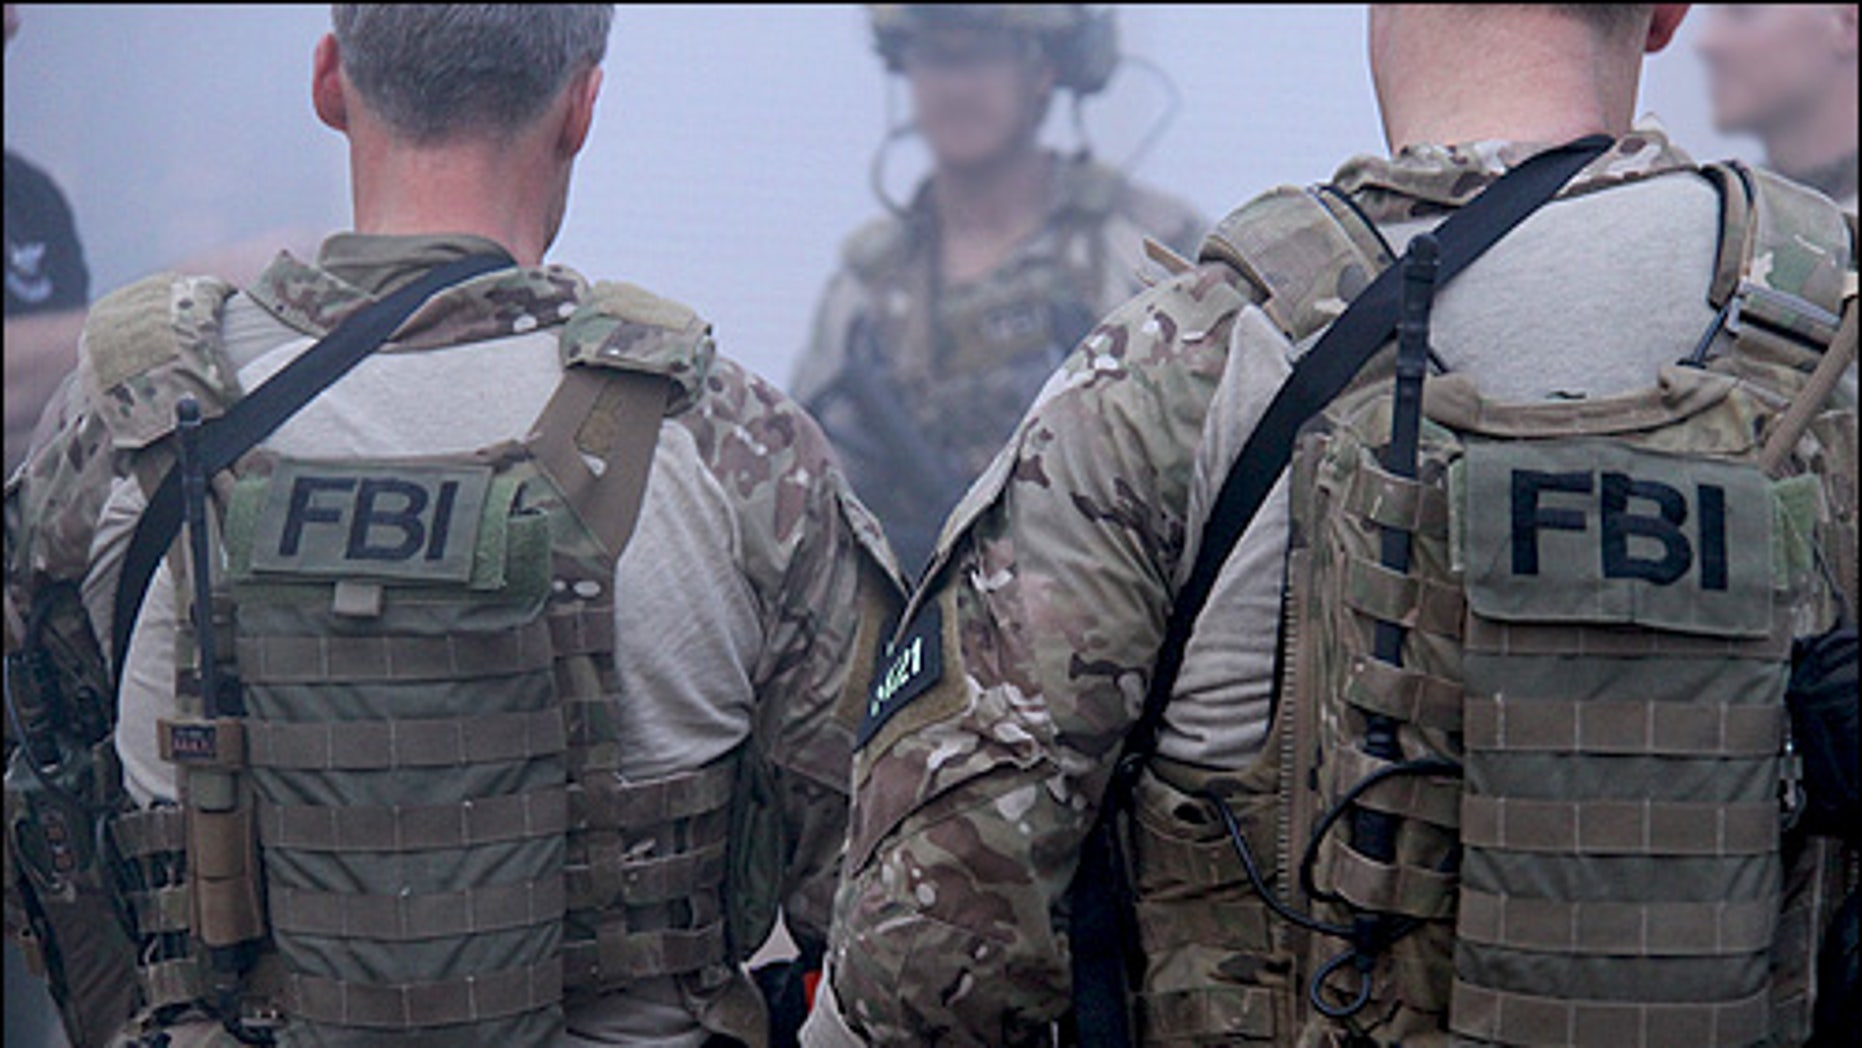 Members of the FBI's Hostage Rescue Team, or HRT, debrief after a training exercise at their headquarters in Quantico, Va.